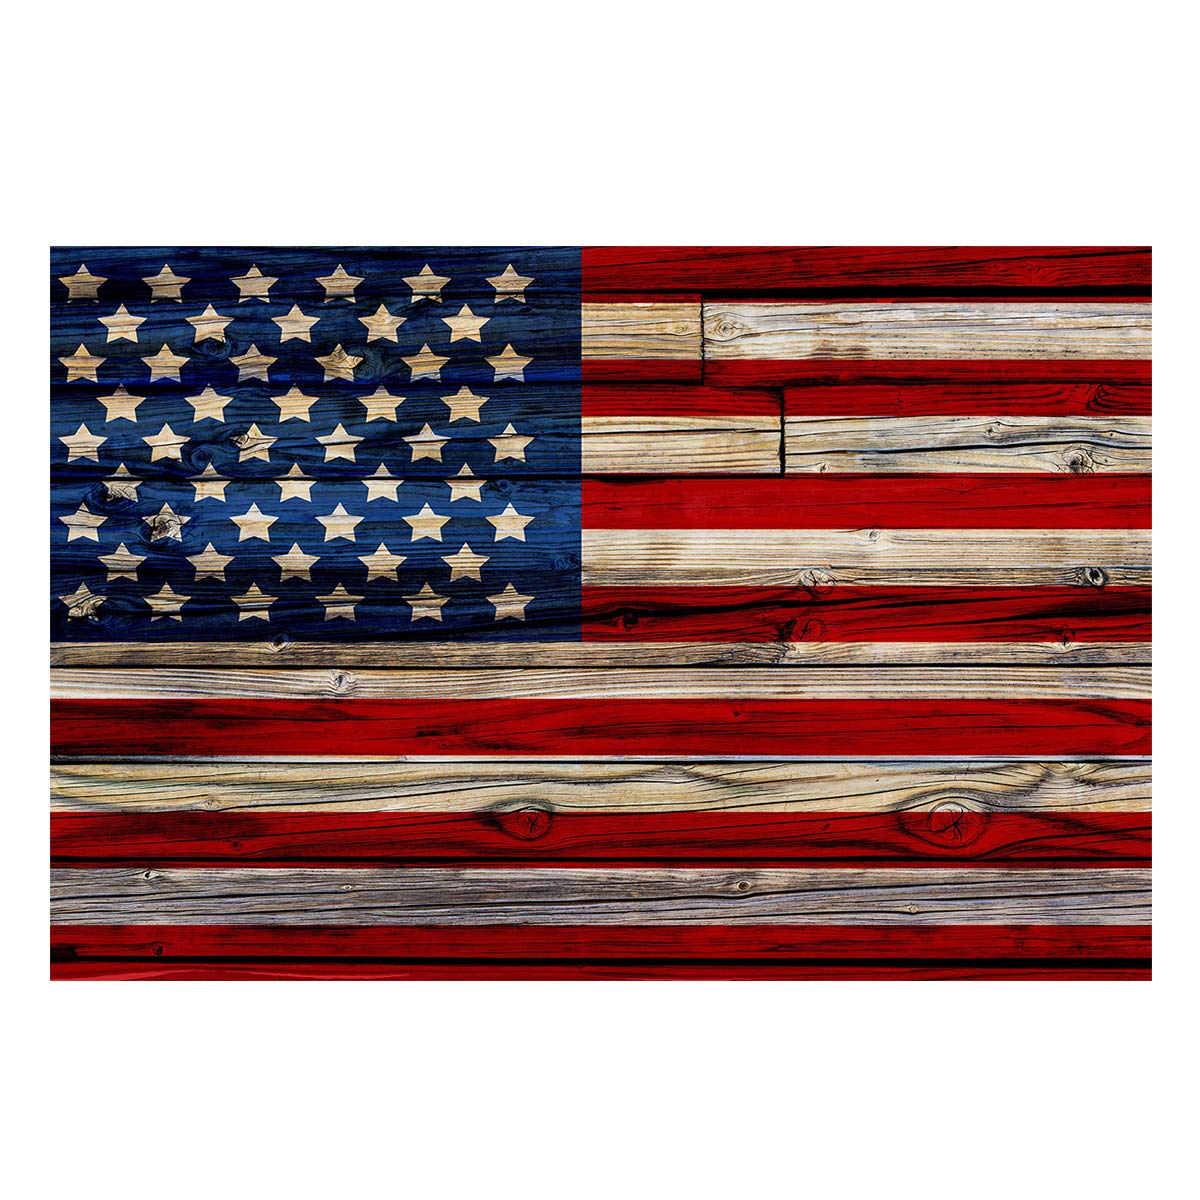 Fantasy Star Aquarium Background American Flag Fish Tank Wallpaper Easy to Apply and Remove PVC Sticker Pictures Poster Background Decoration 24.4'' x 60.8'' by Fantasy Star